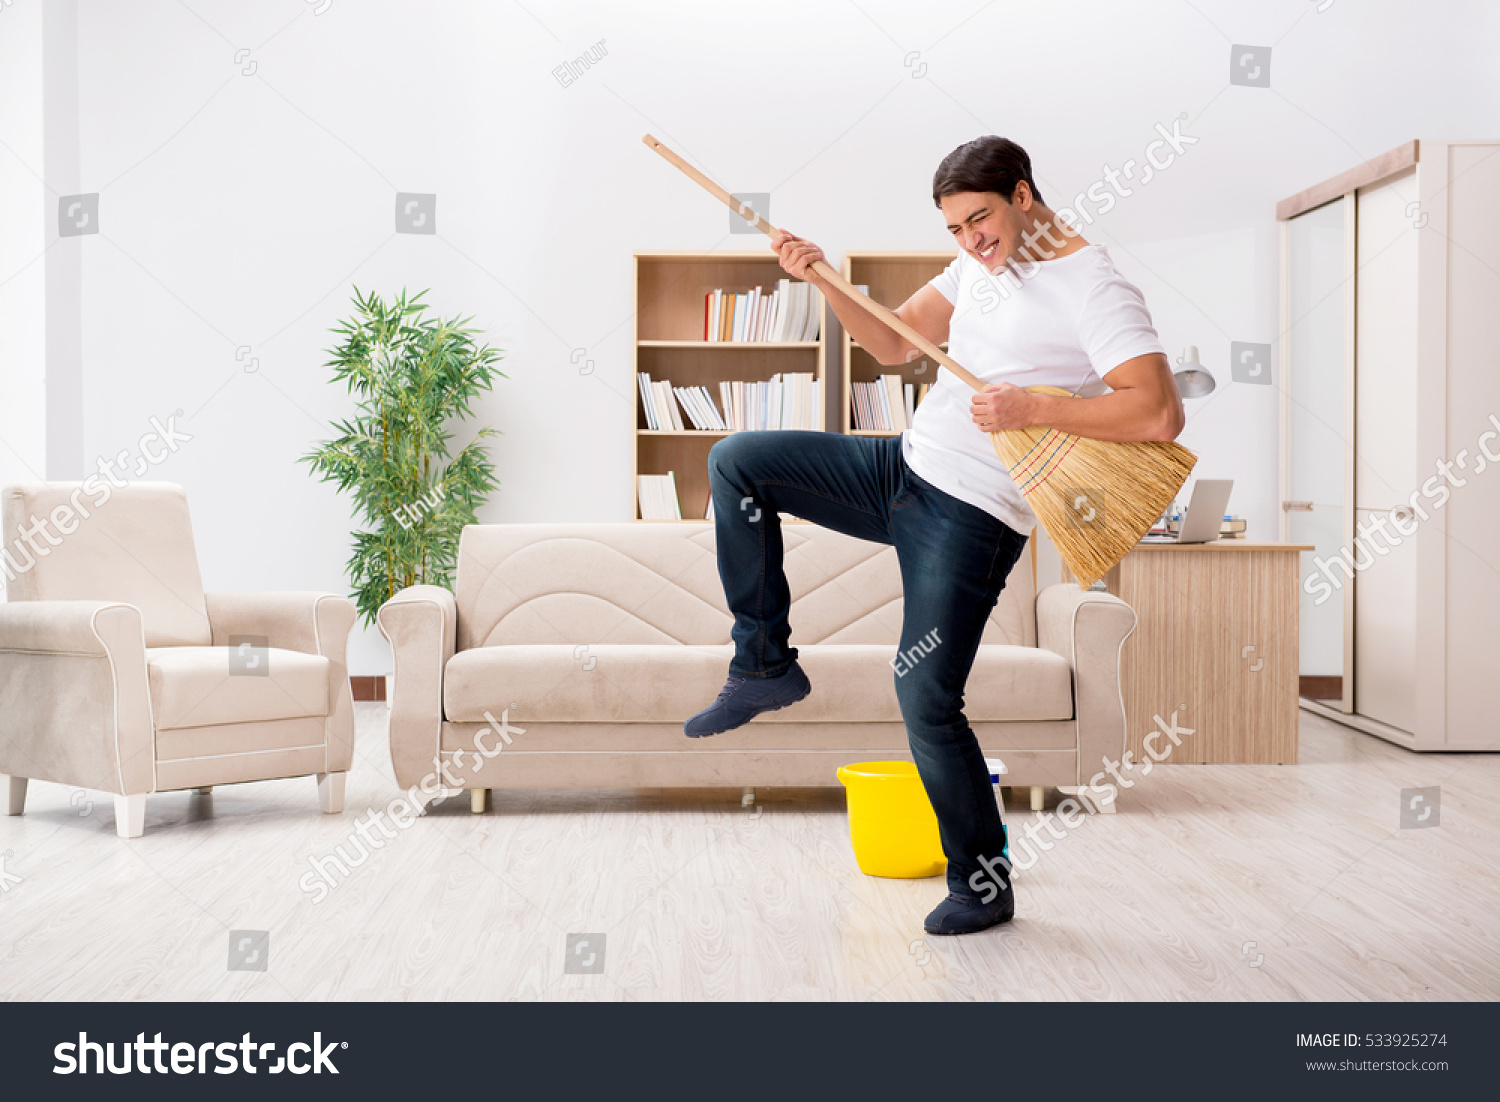 Man cleaning home broom stock photo 533925274 shutterstock for House cleaning stock photos